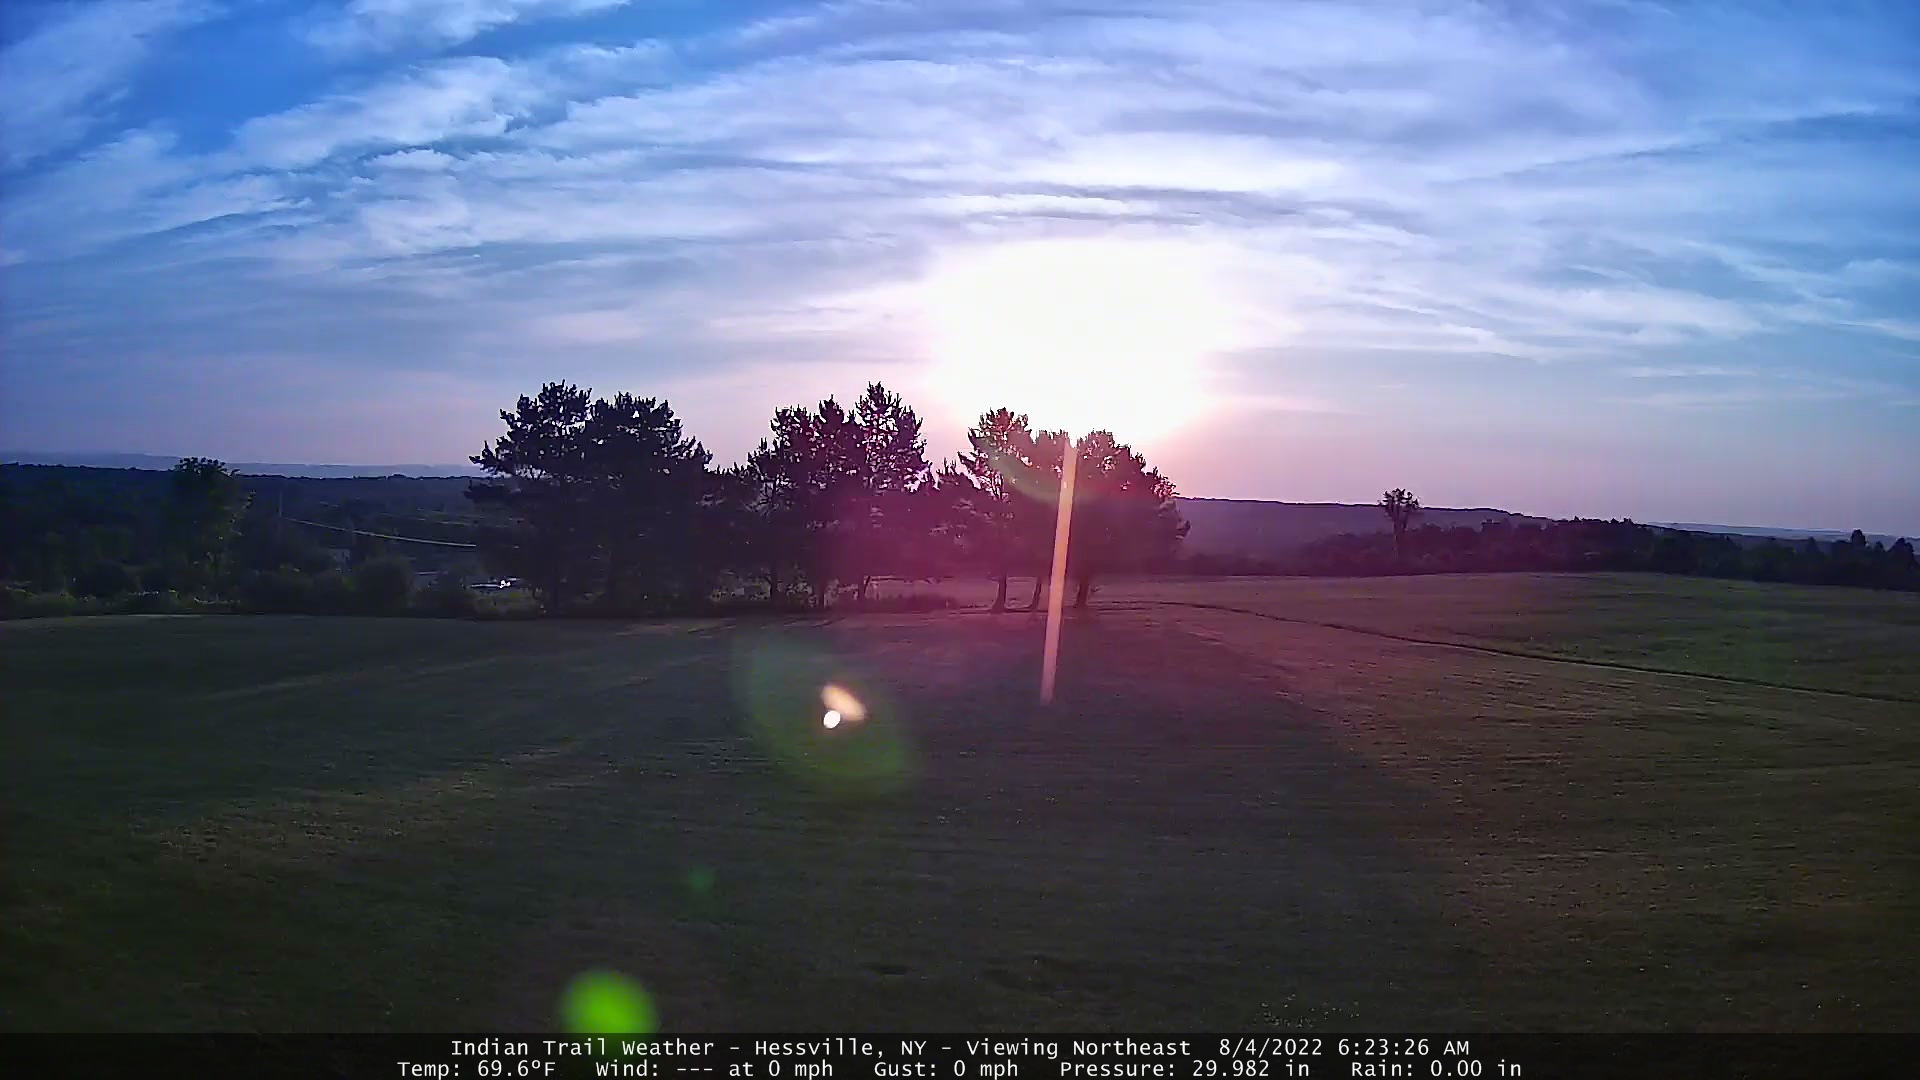 Indian Trail Weather Webcam - Viewing Driveway